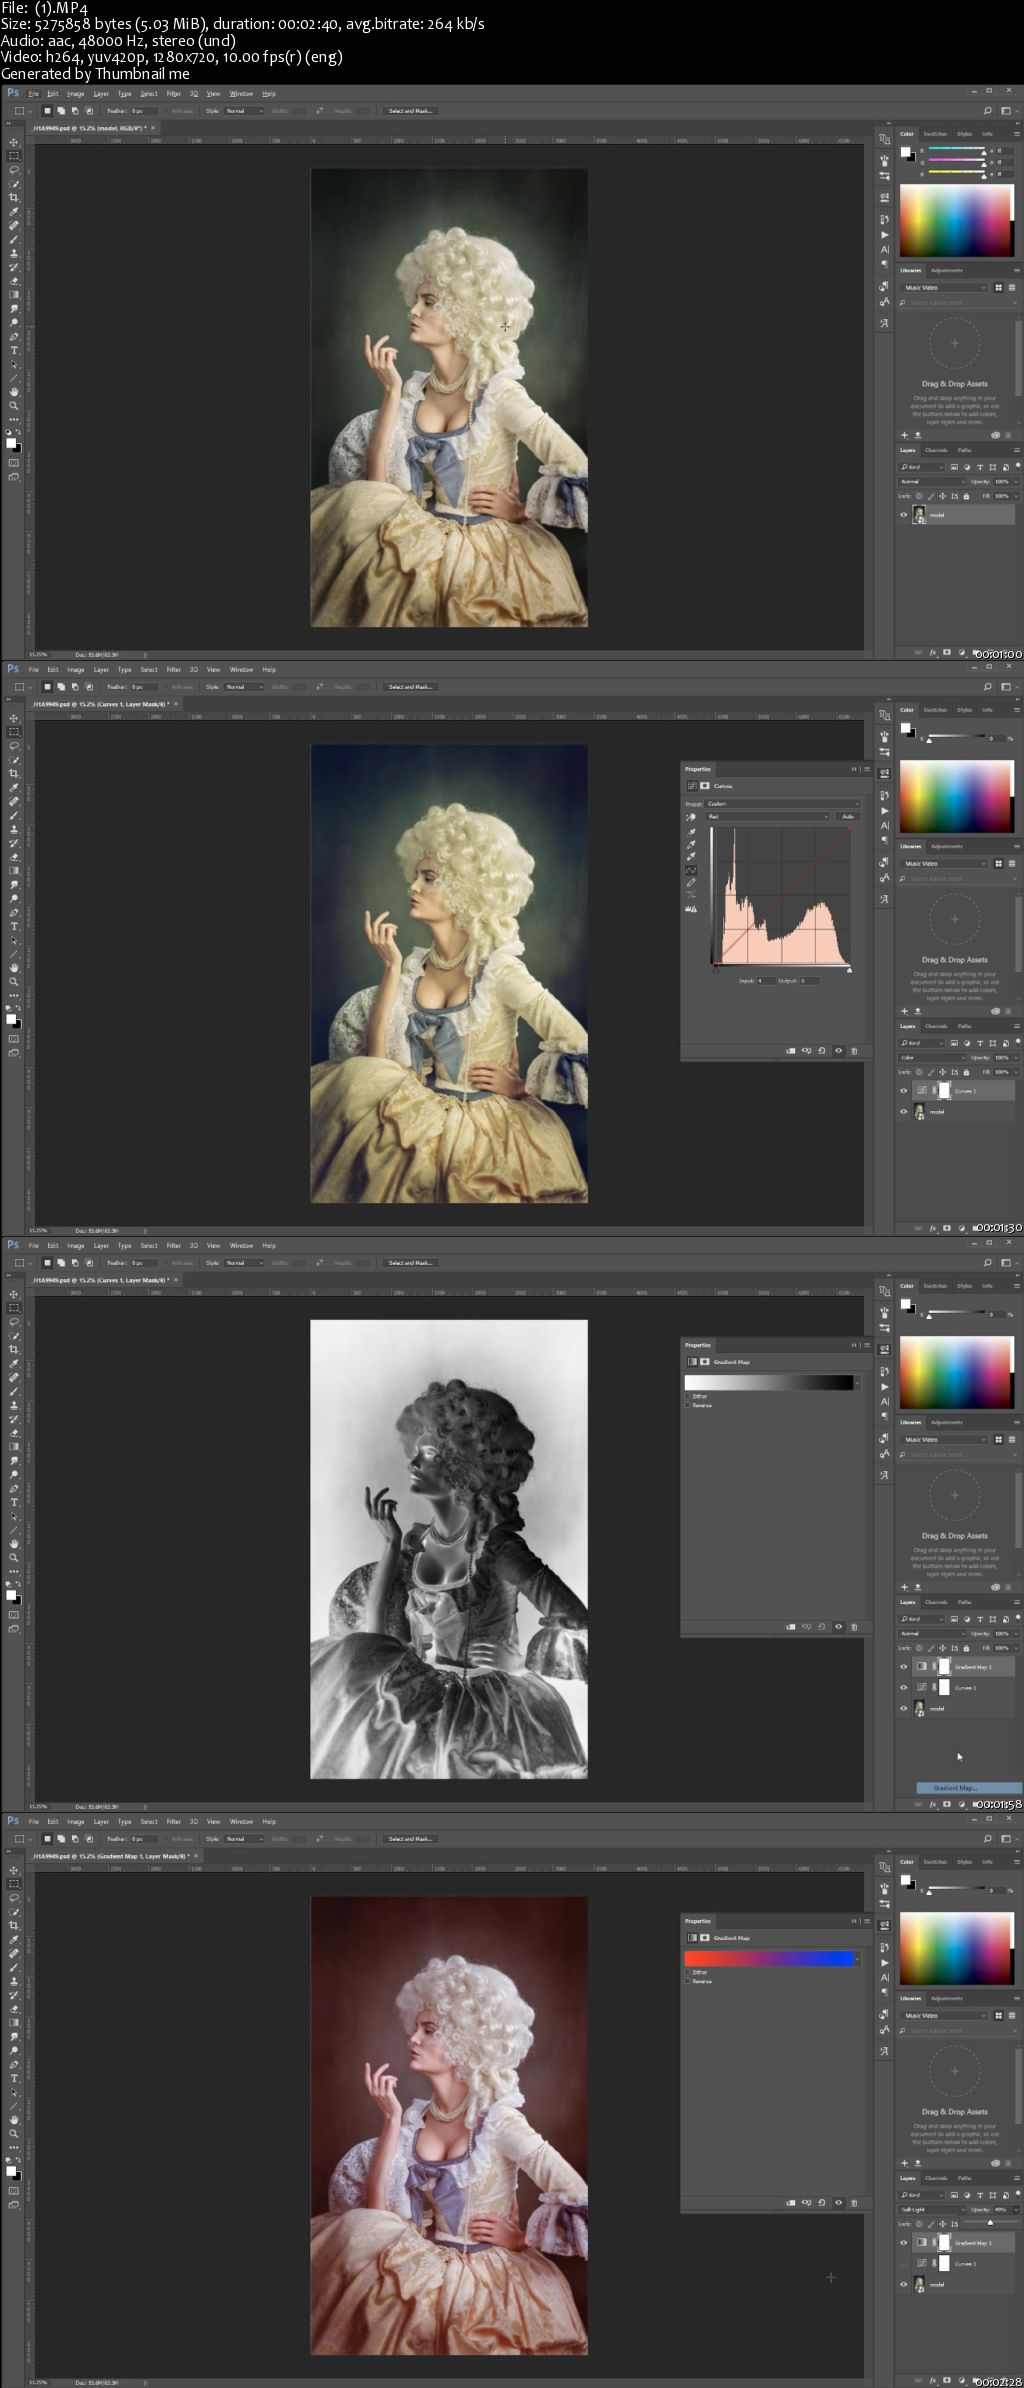 How to color your art in photoshop - How To Stylize Your Photos In Photoshop With Color Overlays